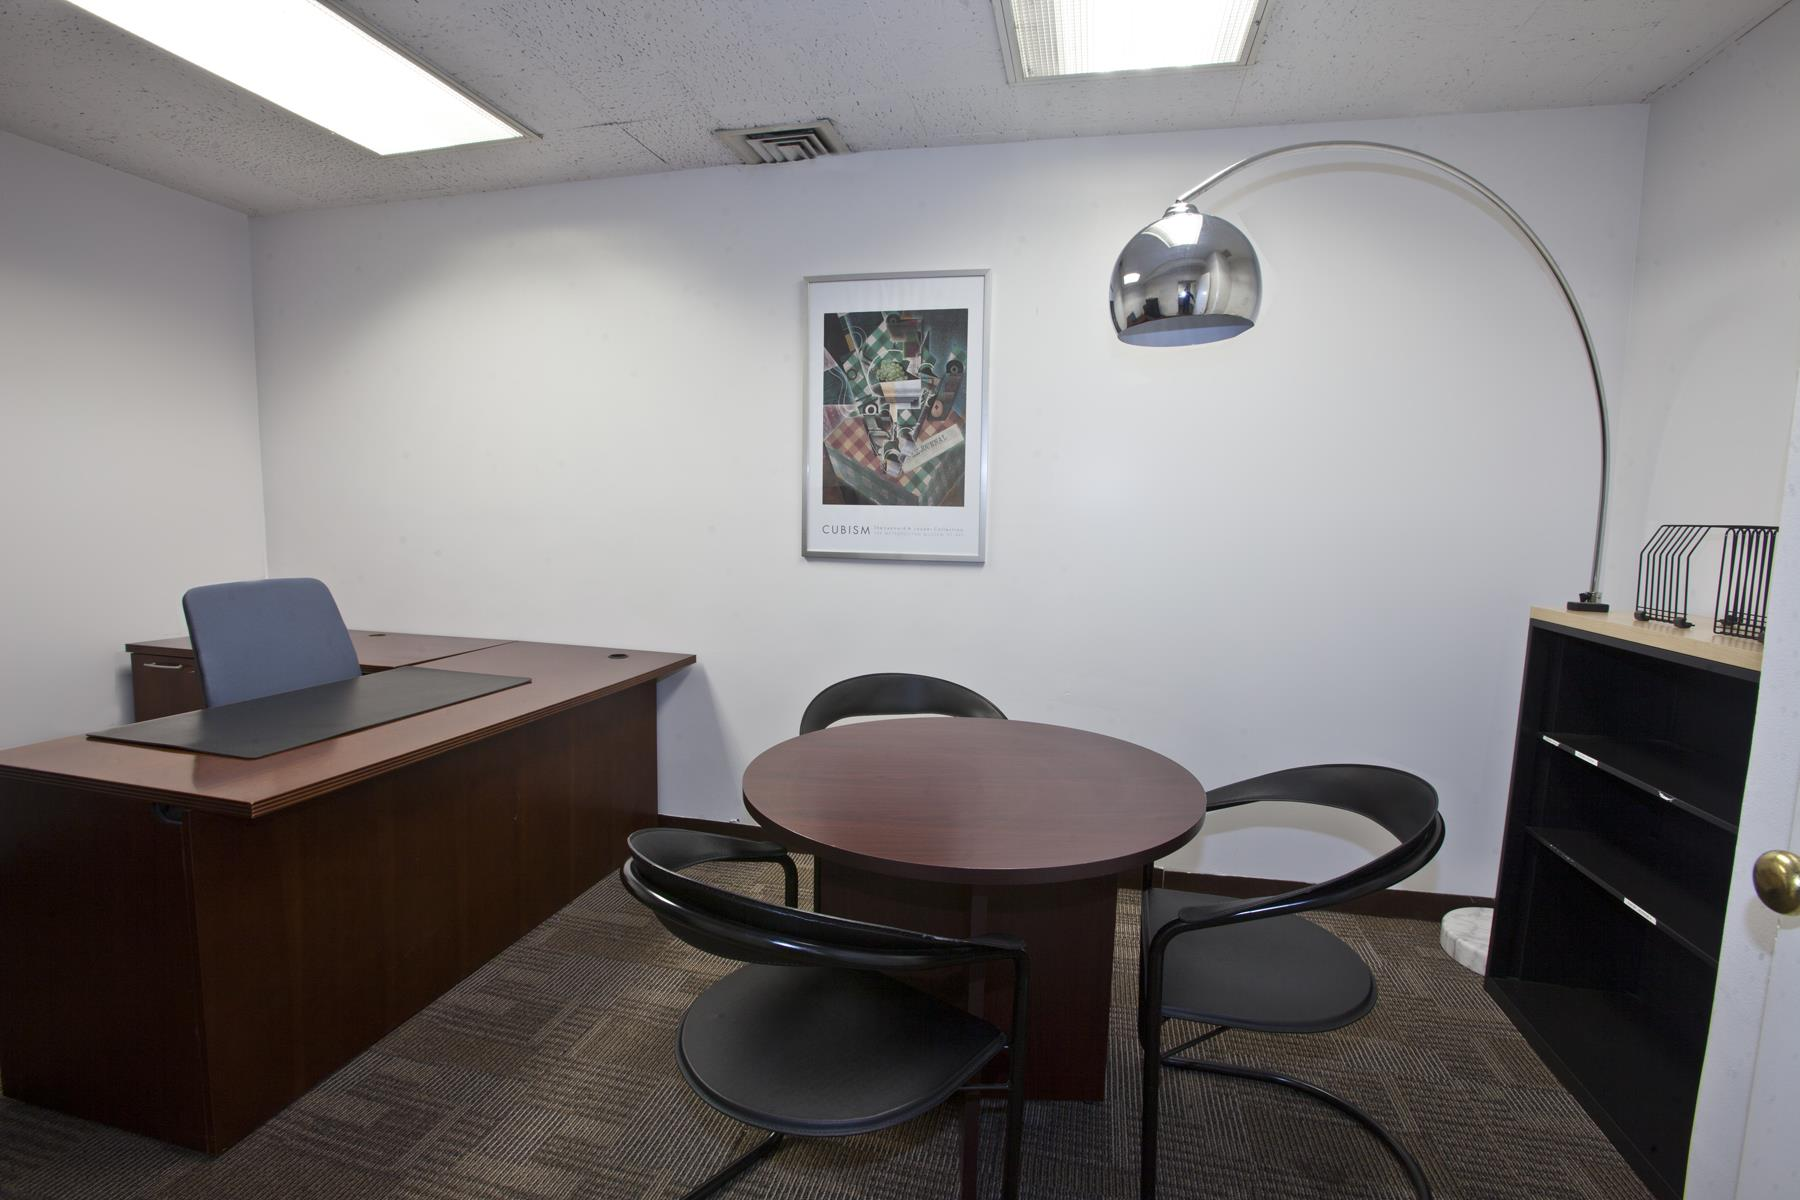 NYC Office Suites-1270 Avenue of the Americas - Interior Office